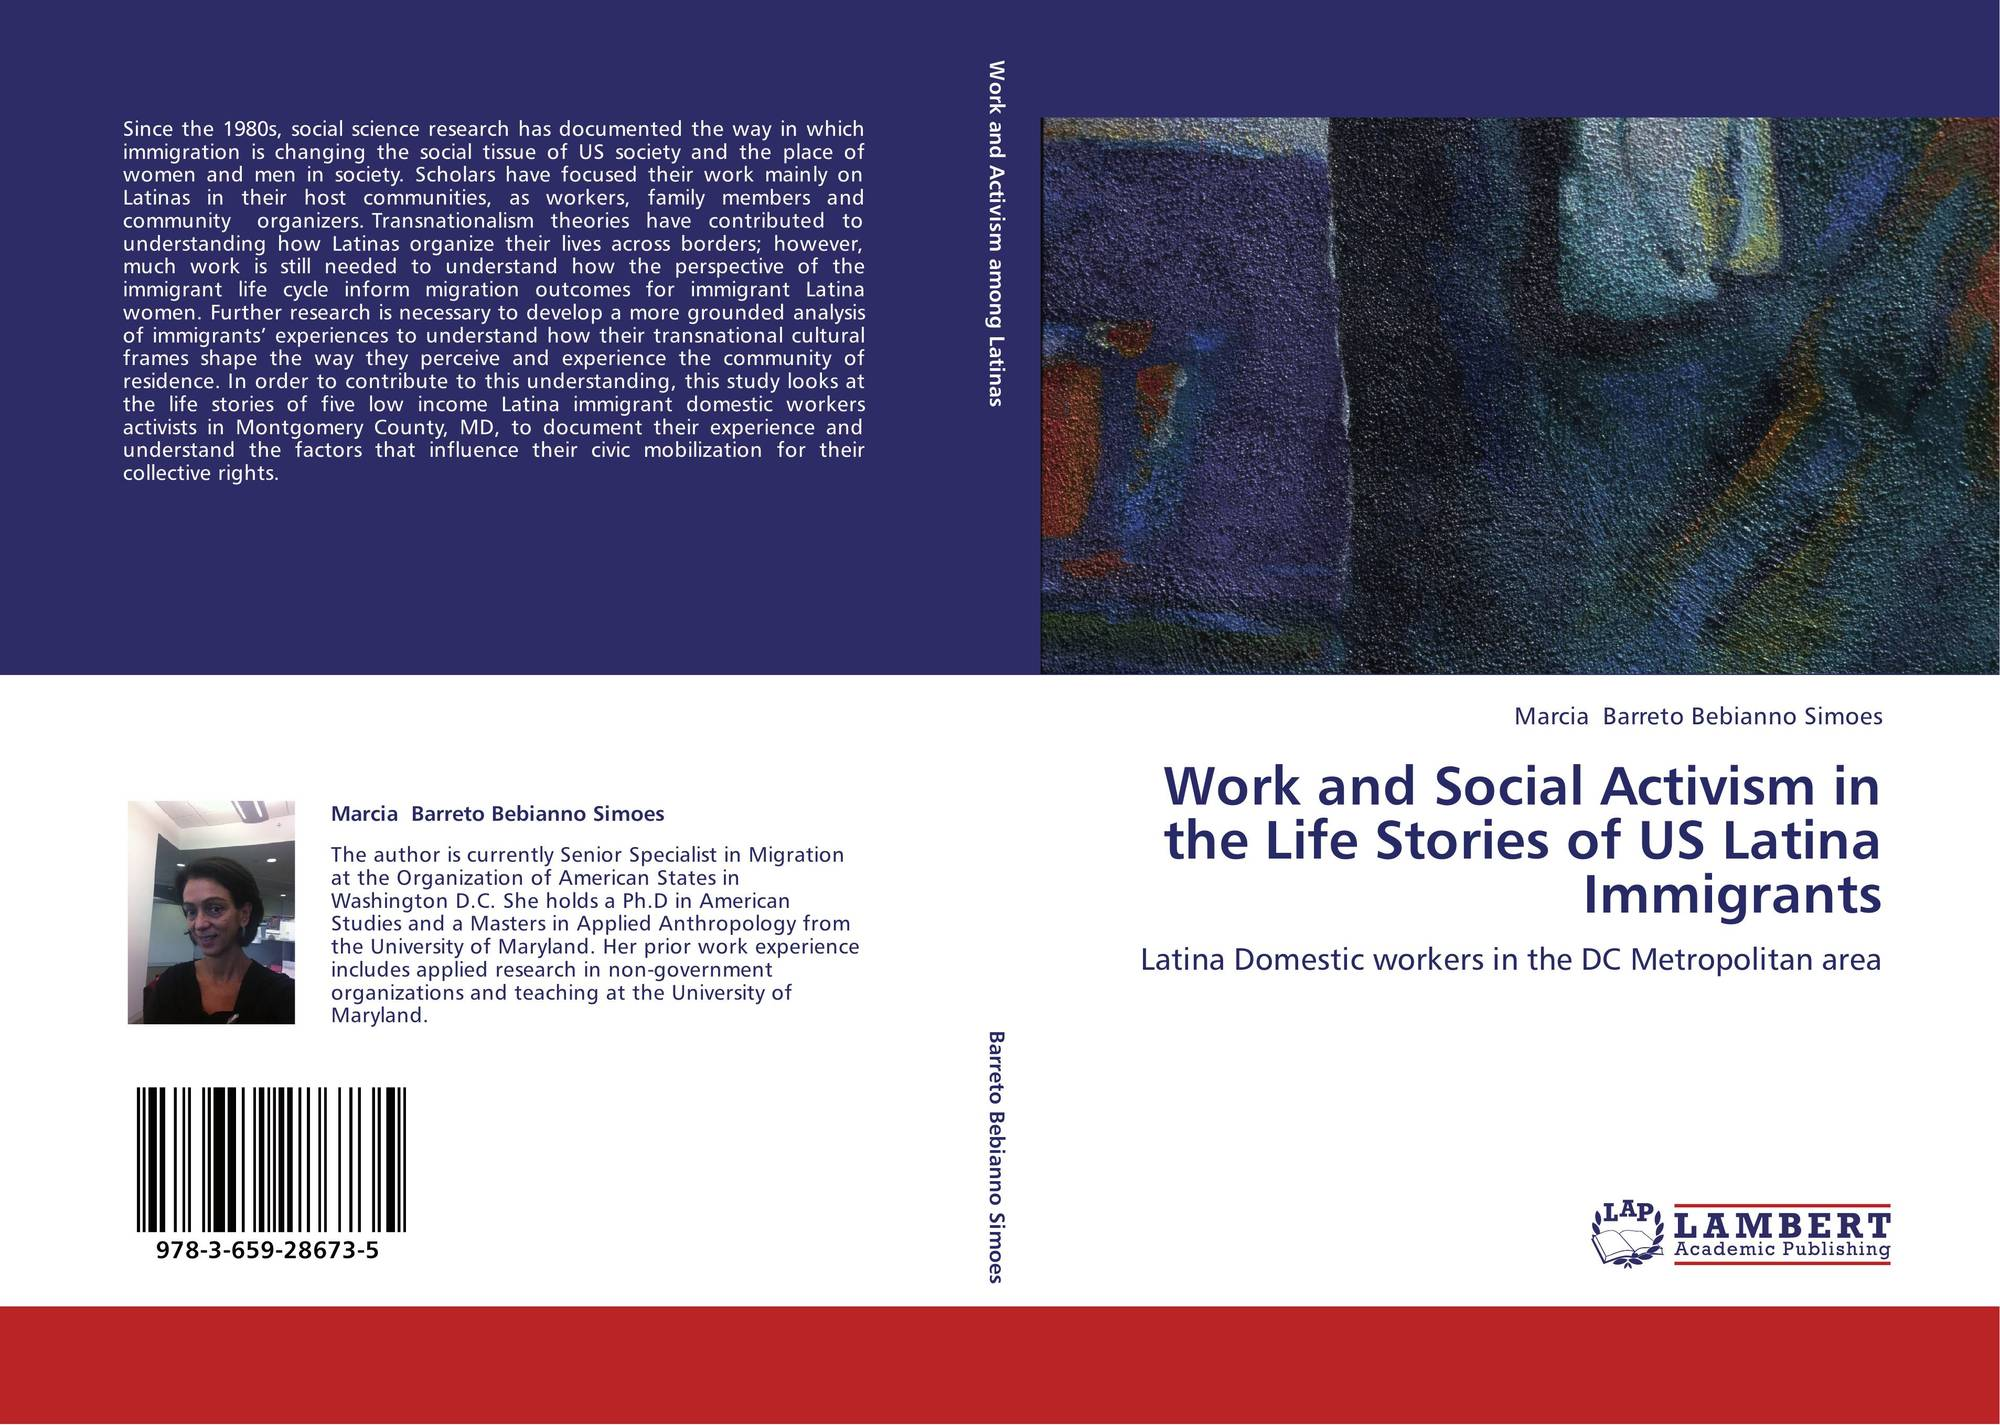 an analysis of latina immigrant women and paid domestic work an article